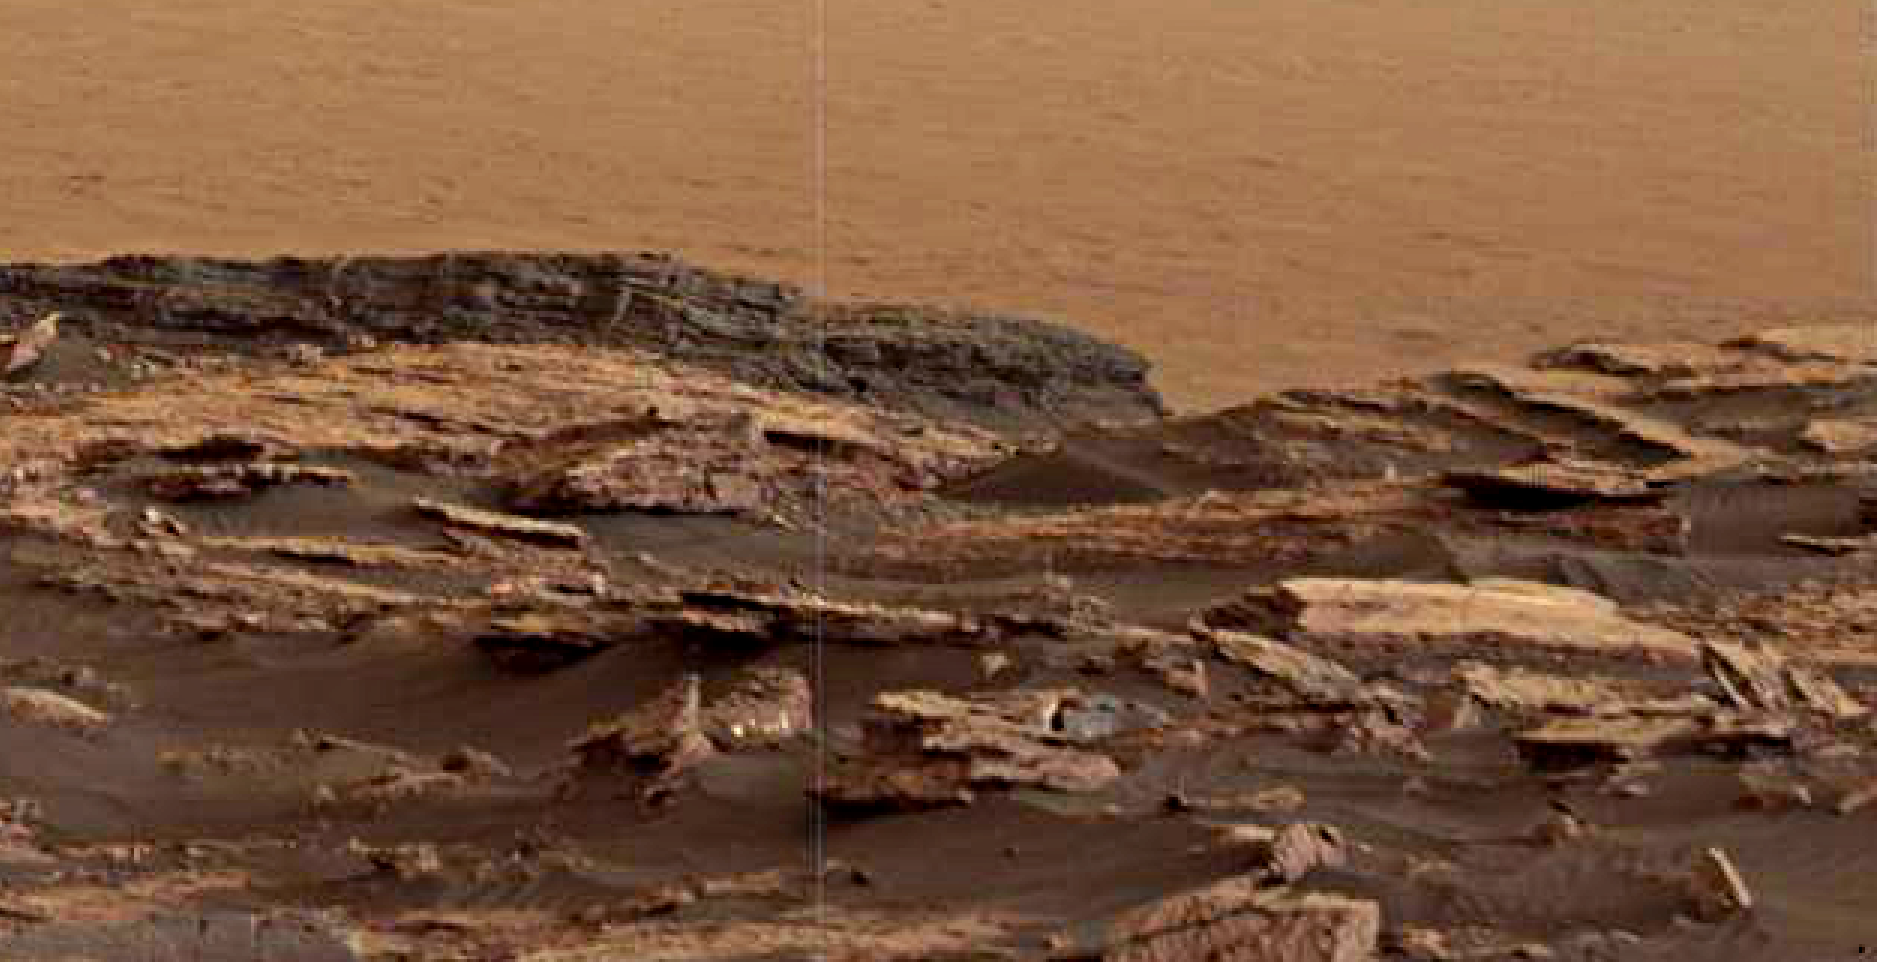 mars-sol-1508-anomaly-artifacts-4-was-life-on-mars